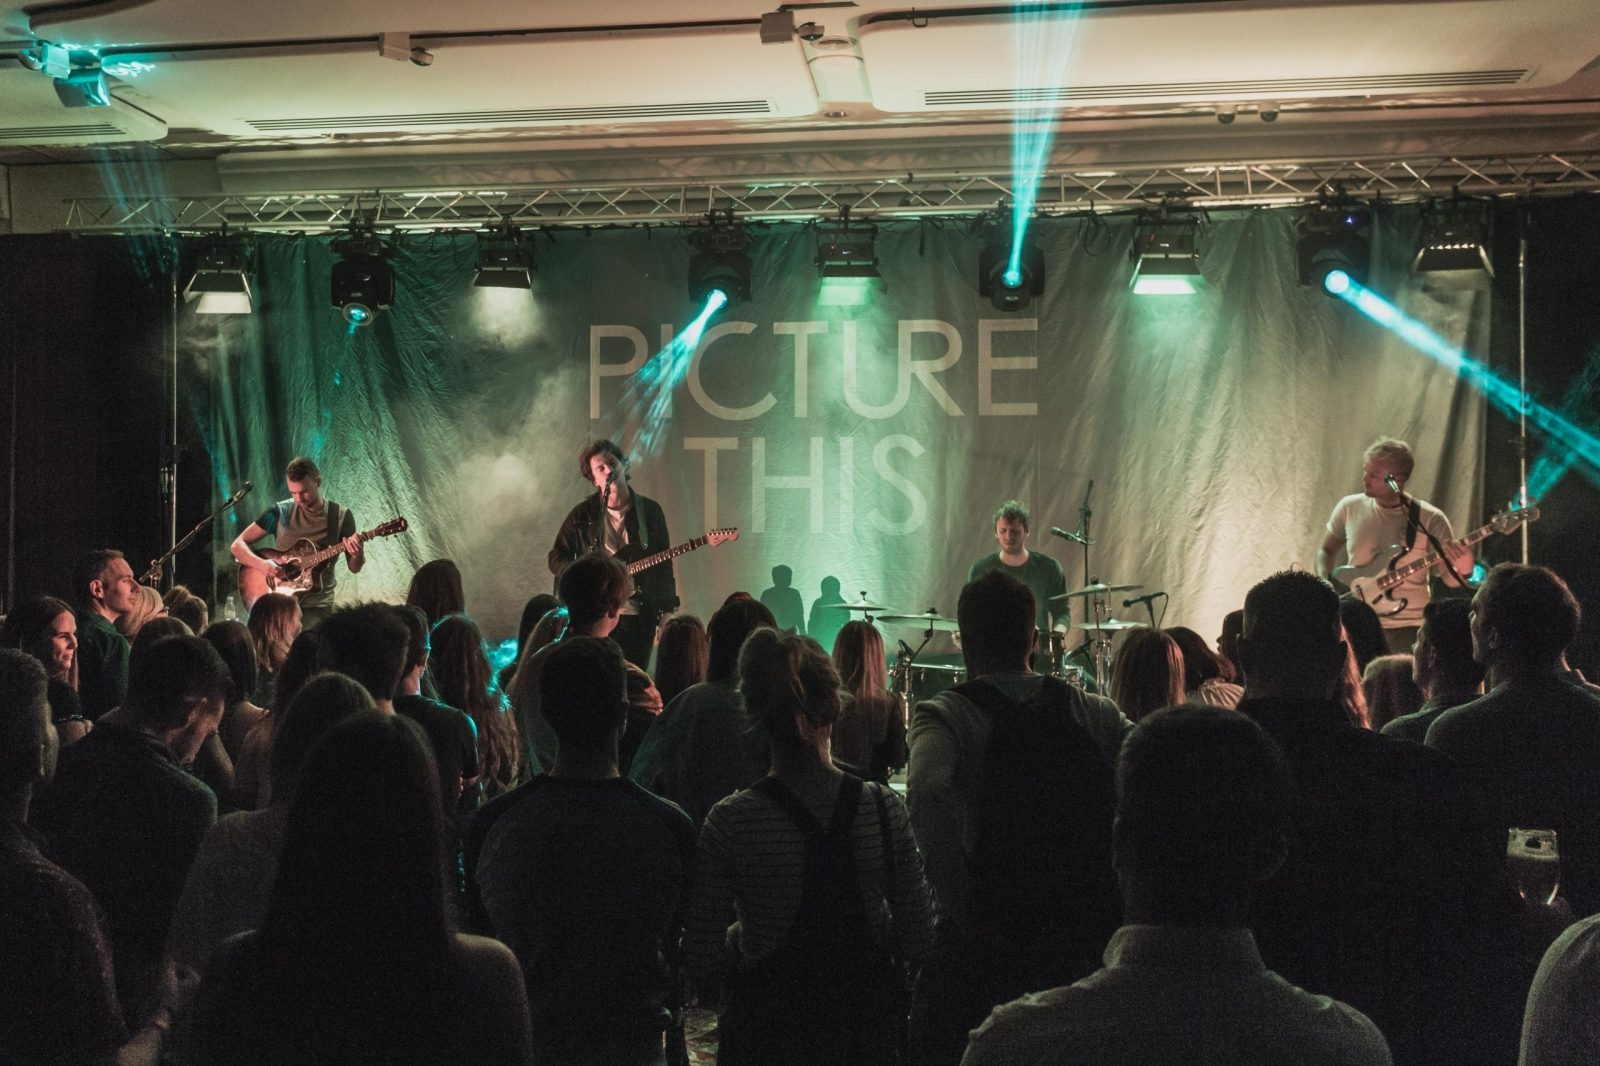 Picture This playing a secret gig at The Europa Hotel before their upcoming show at the SSE Arena, Belfast.